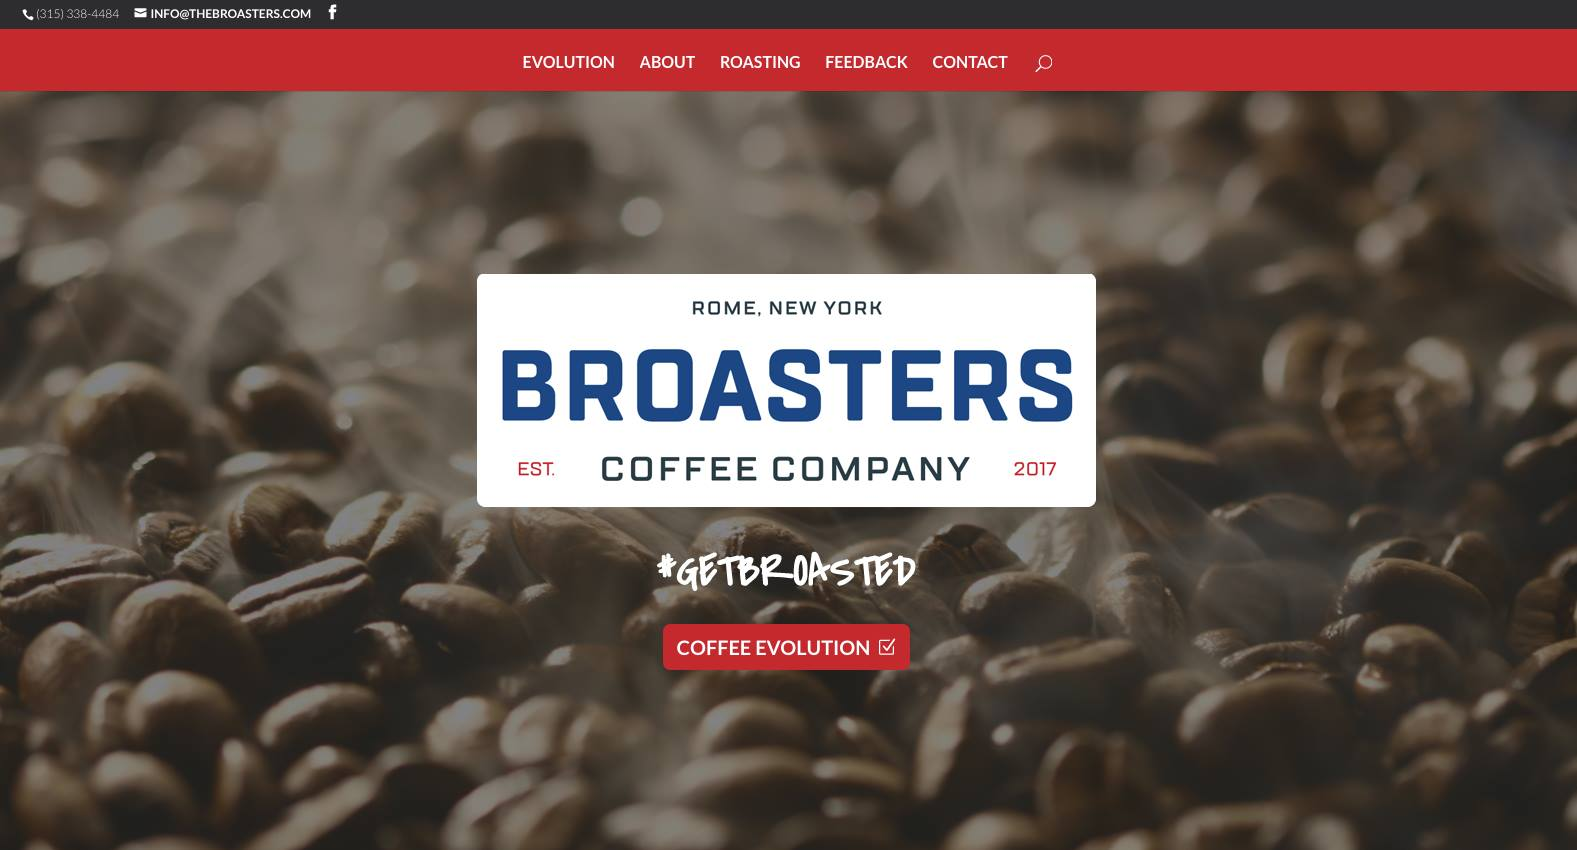 Broasters Coffee Company